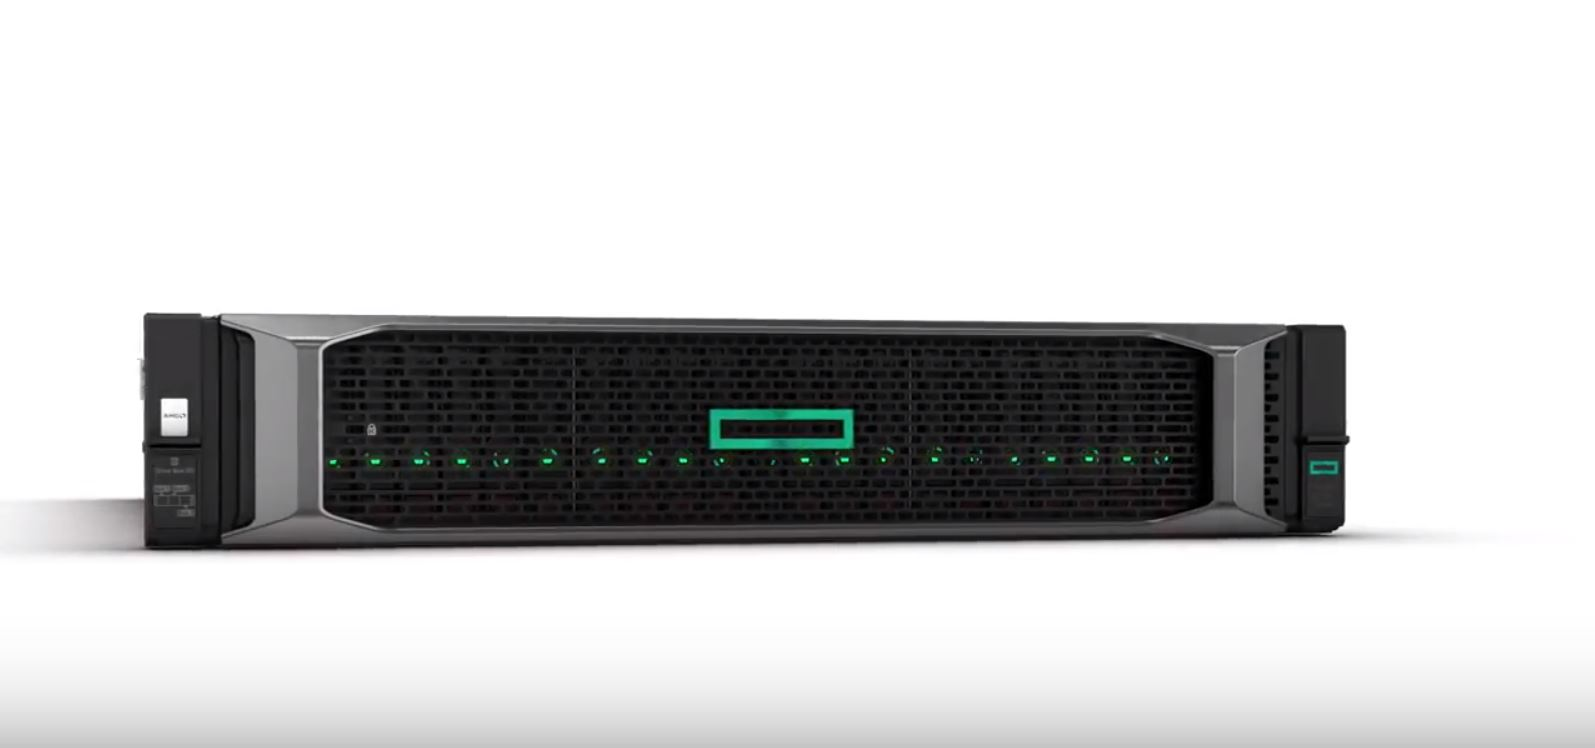 HPE ProLiant DL385 Gen10 Released